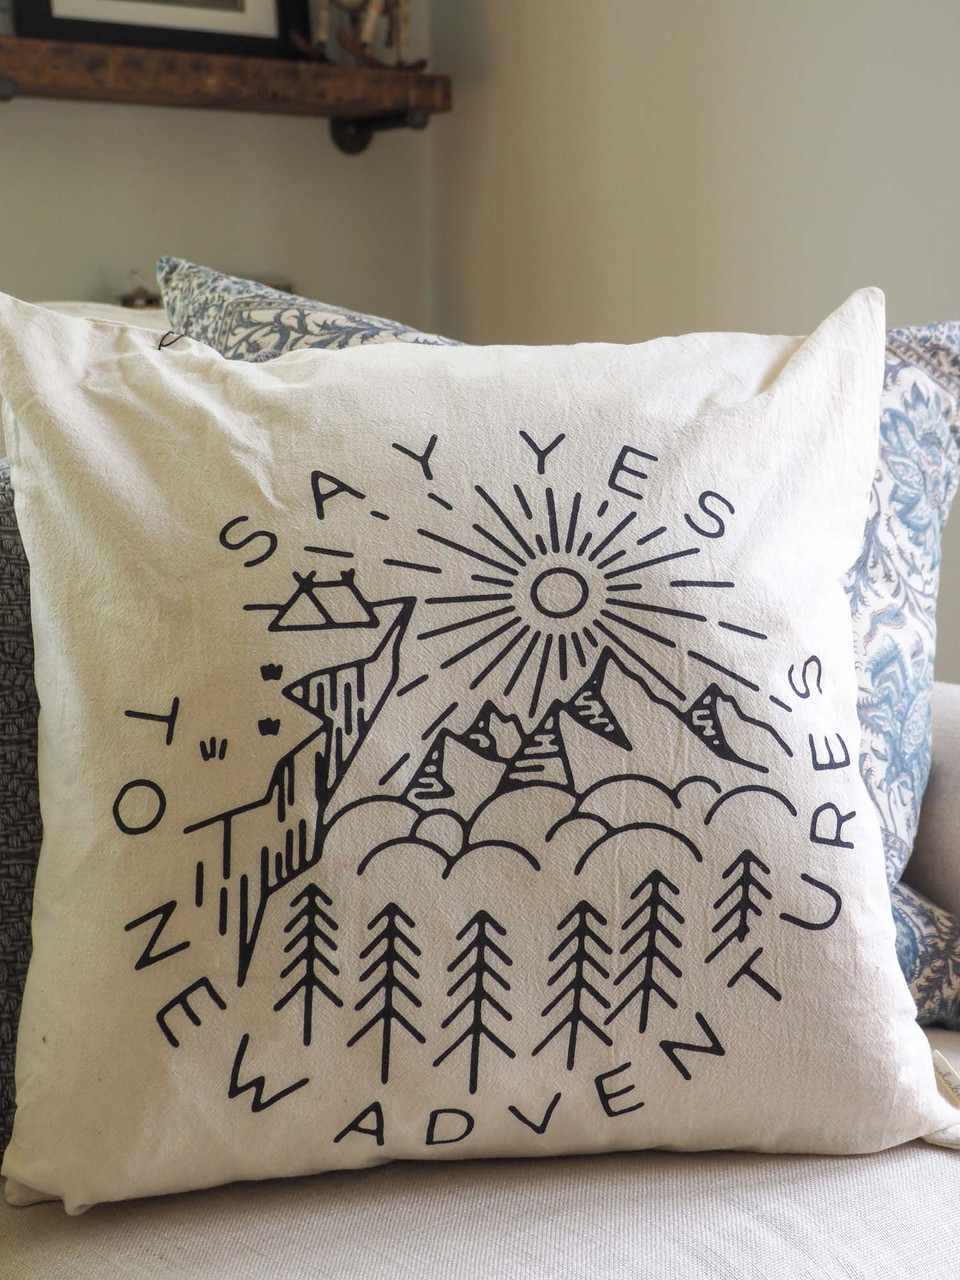 say yes to new adventures pillow indaba